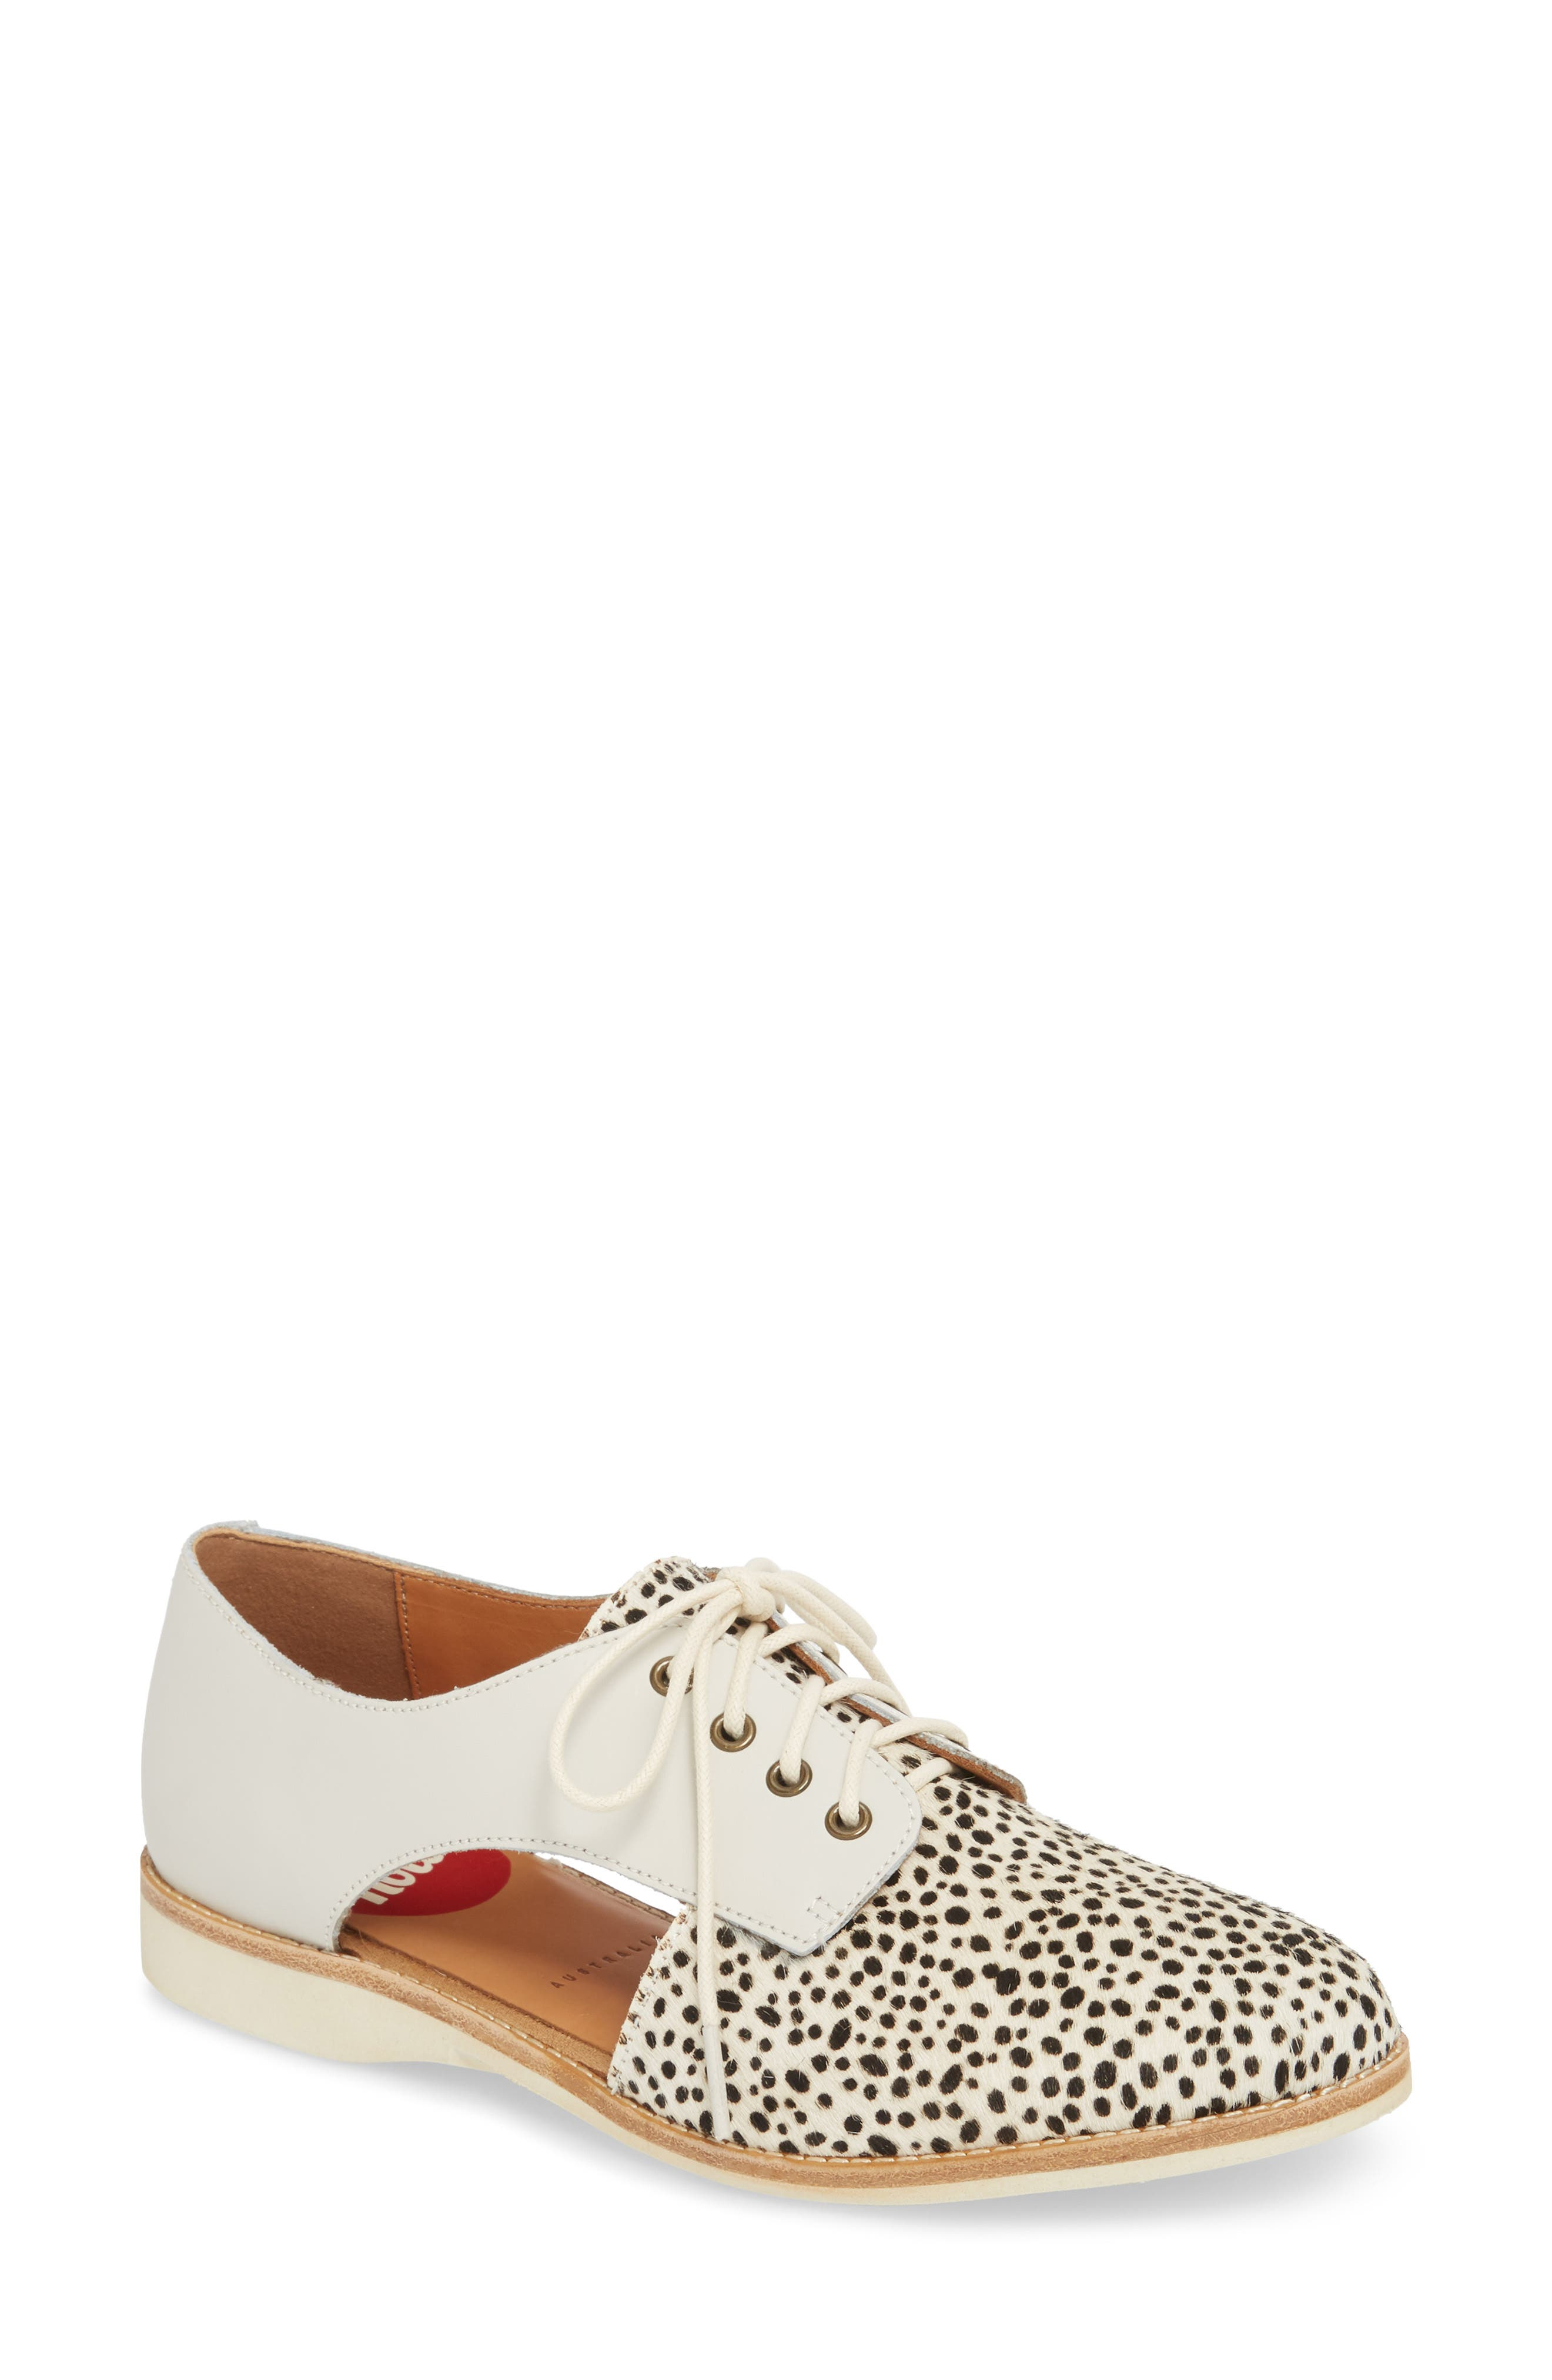 ROLLIE,                             Side Cut Derby,                             Main thumbnail 1, color,                             SNOW LEOPARD/ WHITE LEATHER